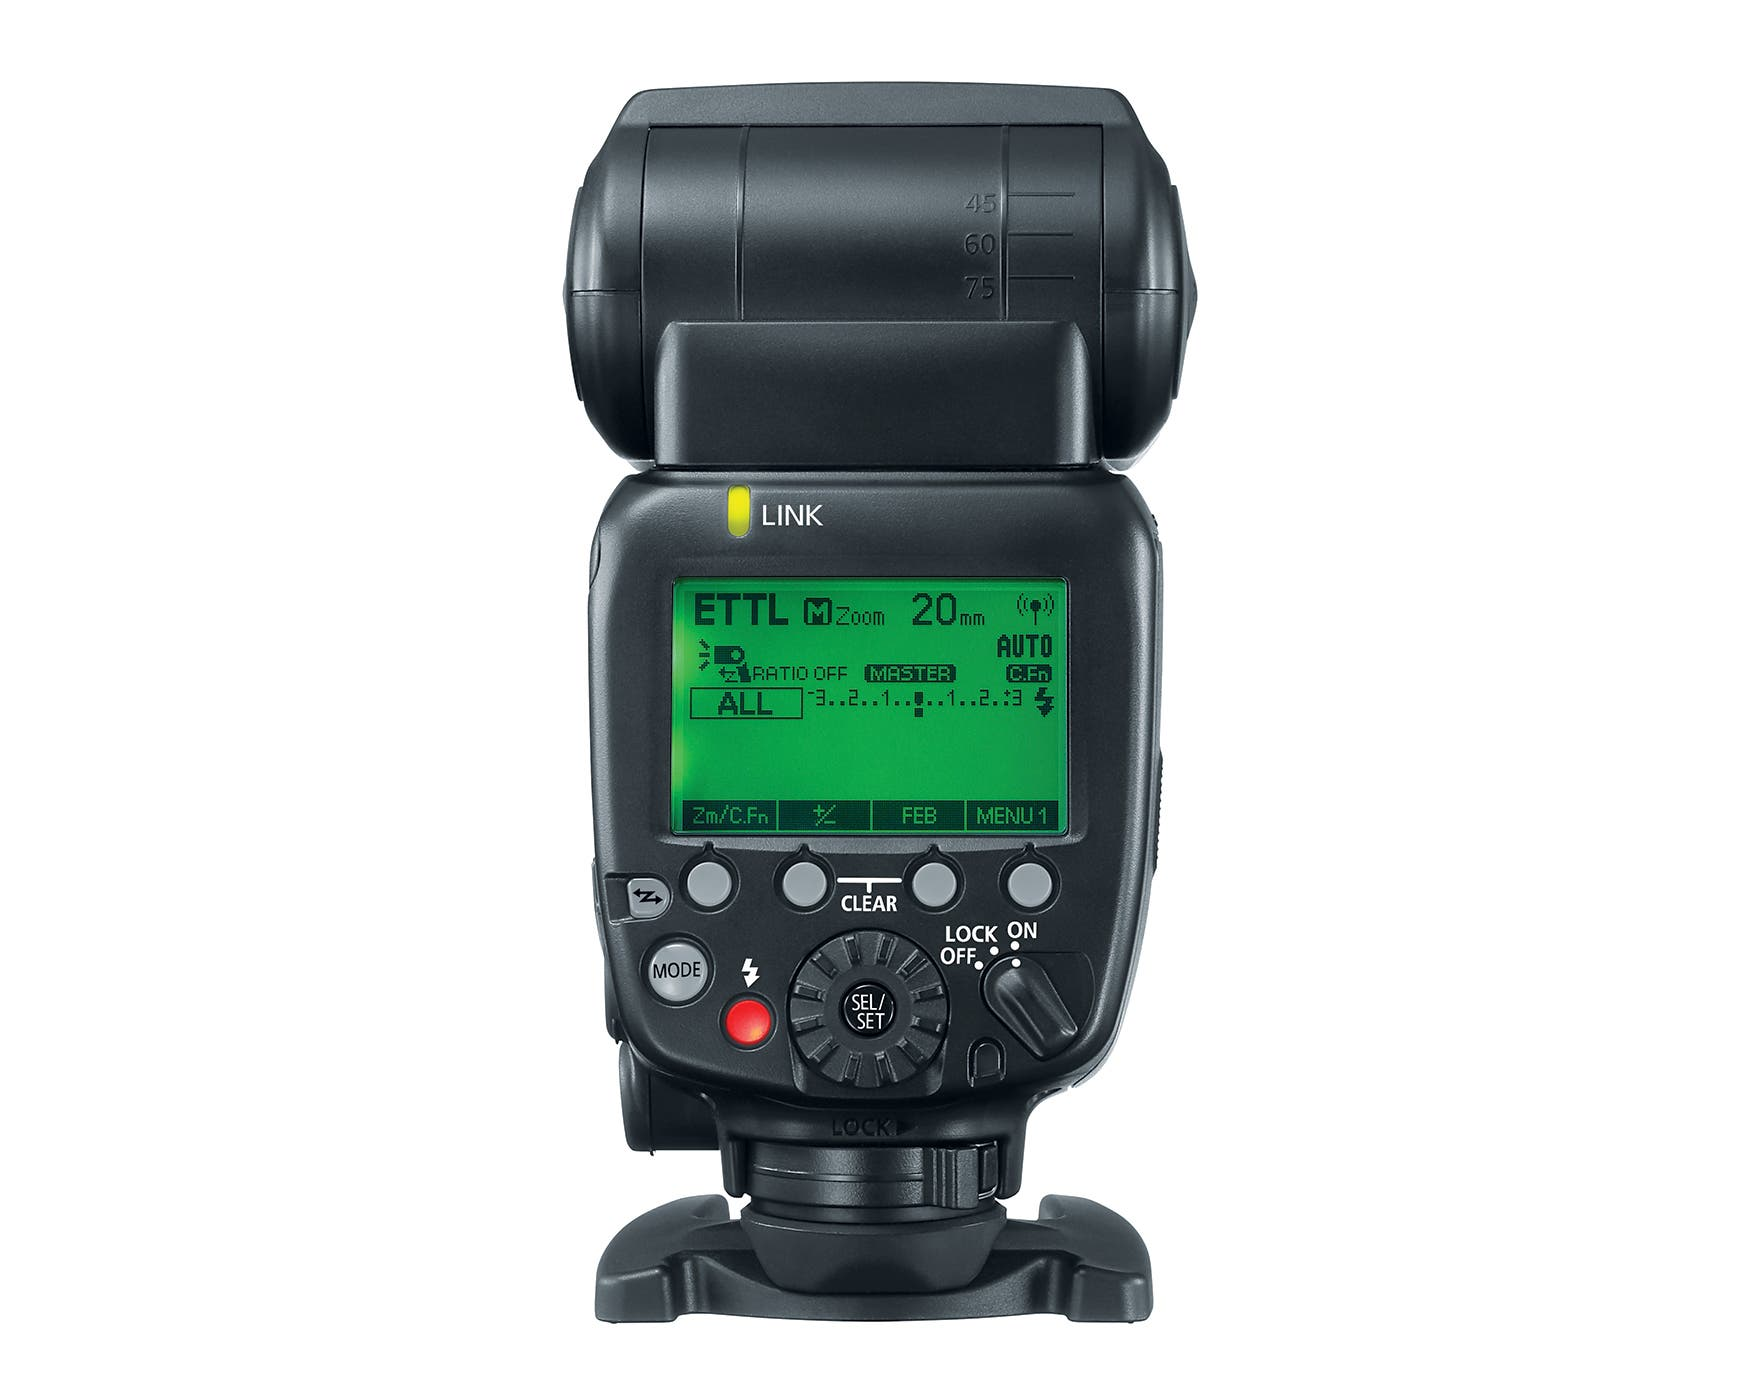 Canon Announces New Radio Flash and Lens